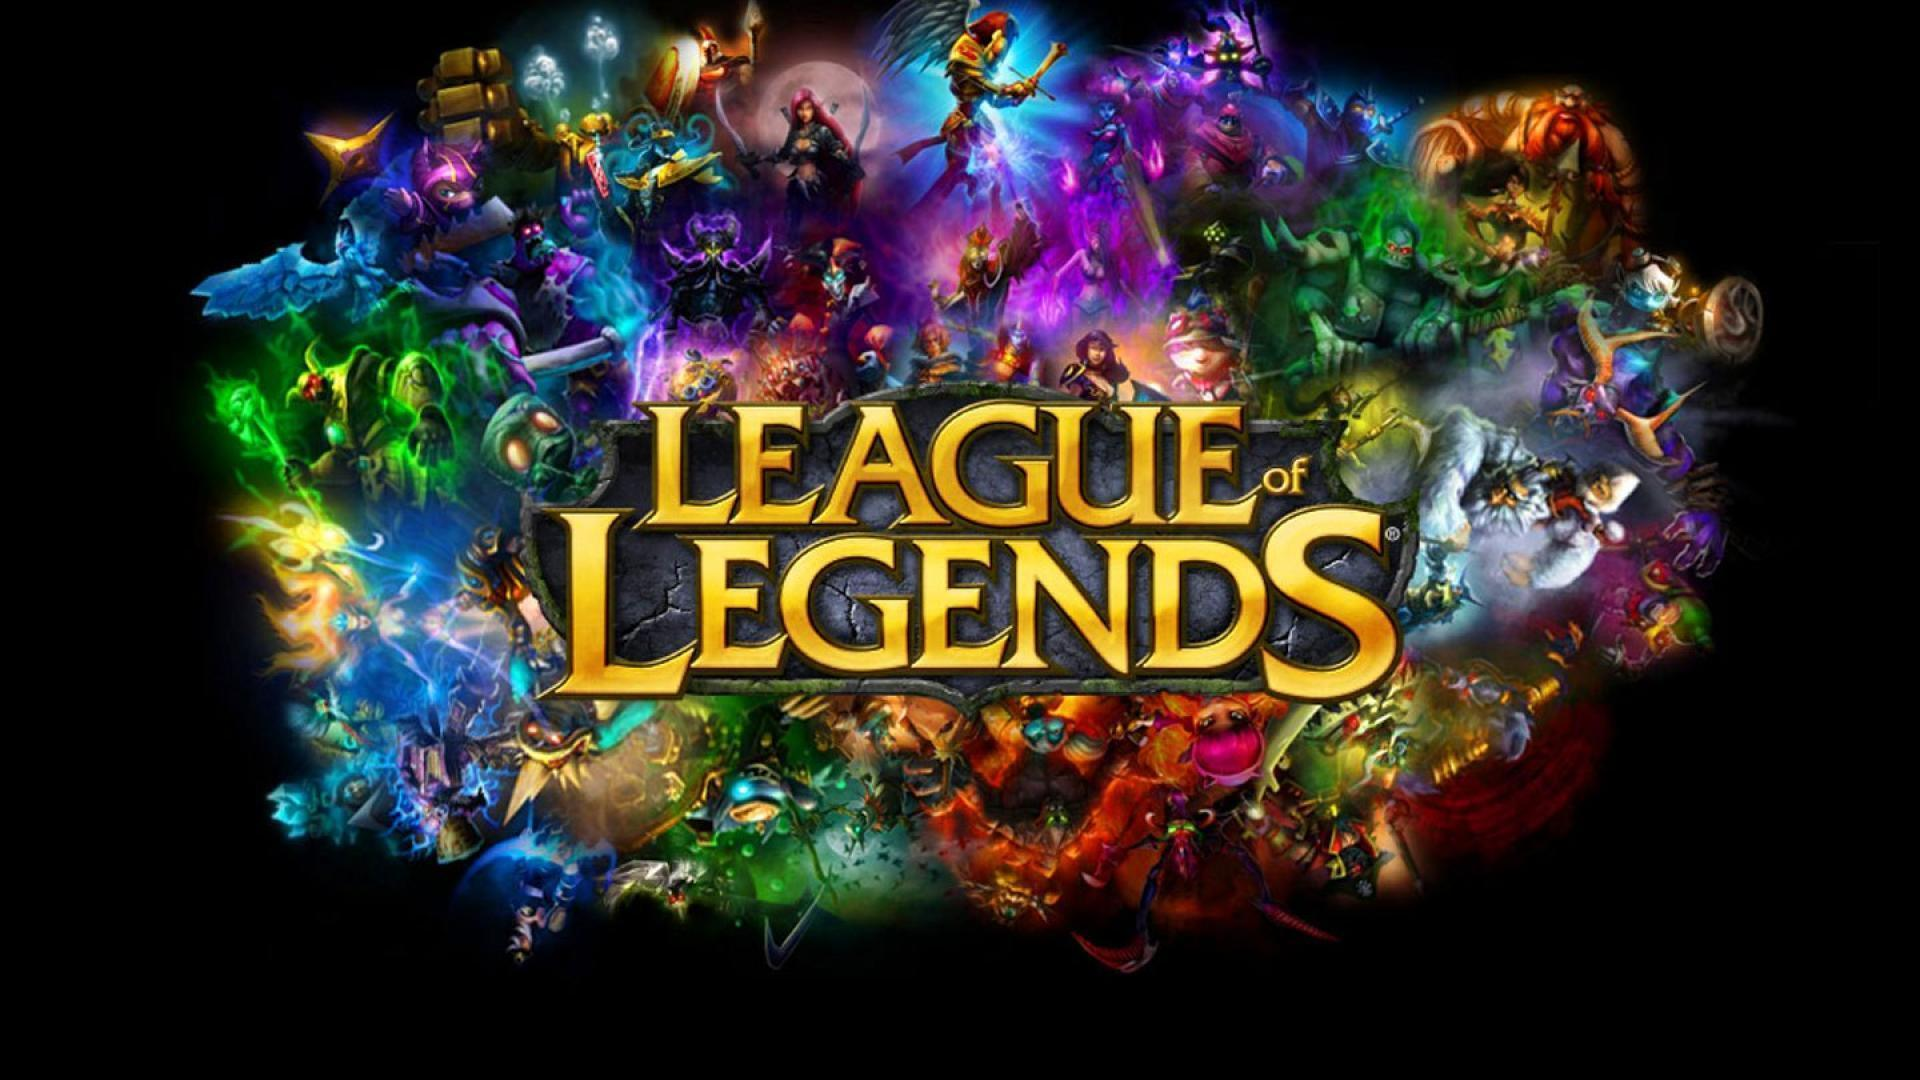 League of legends wallpaper pack - League Of Legends Wallpaper 813 1920x1080 Px